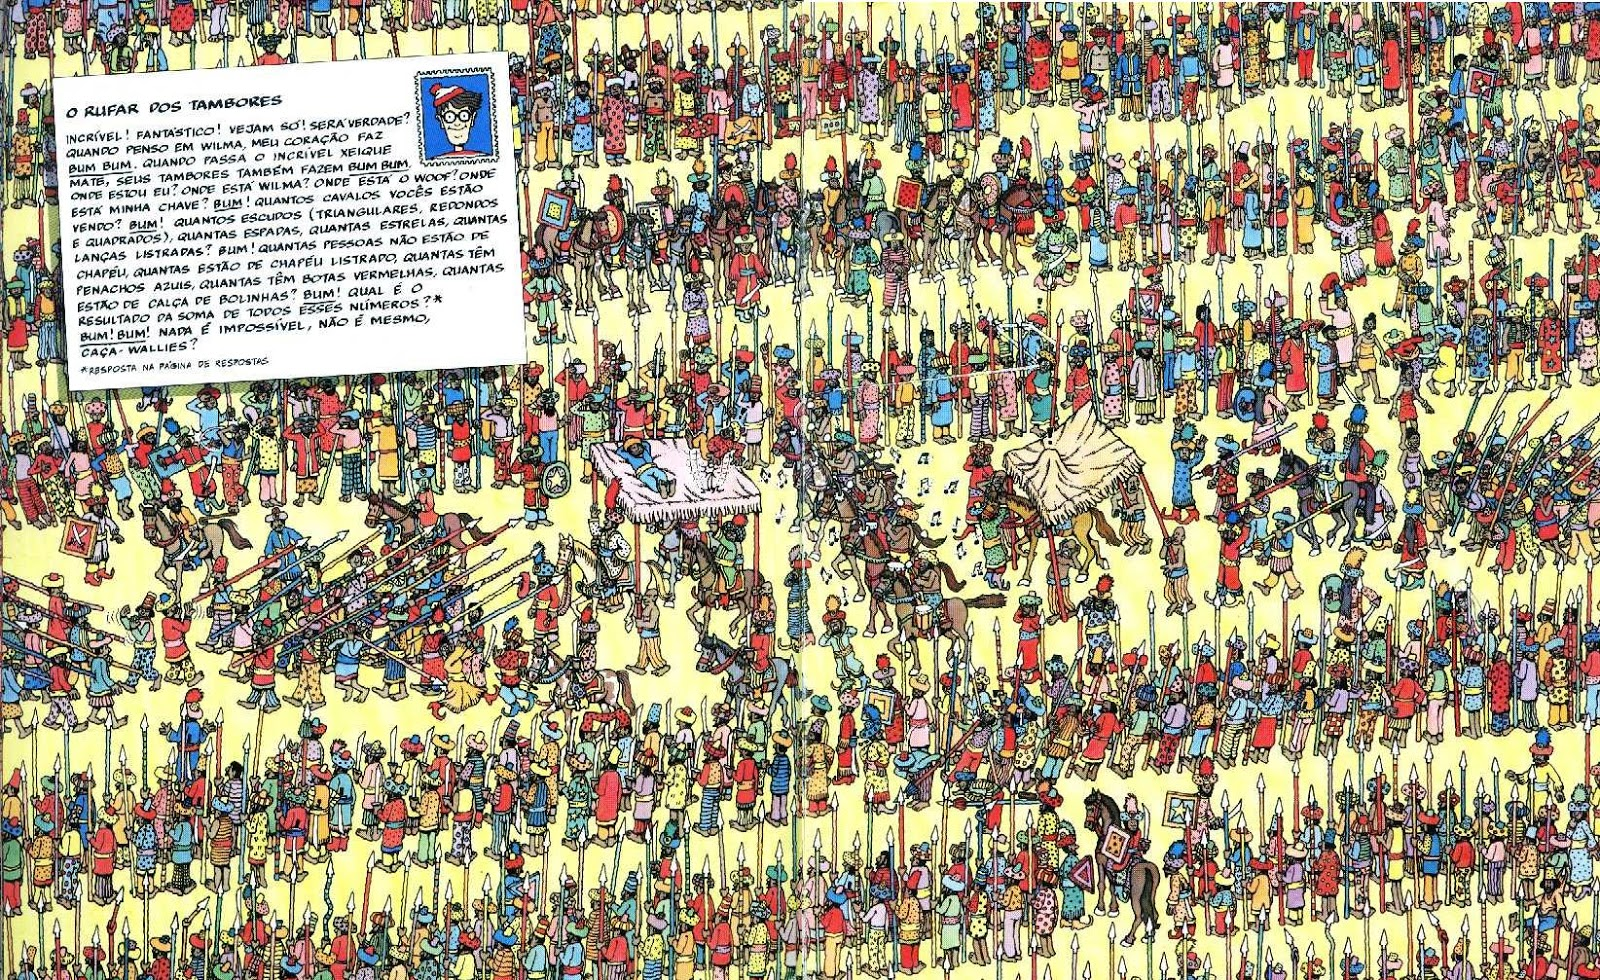 More about Waldo in